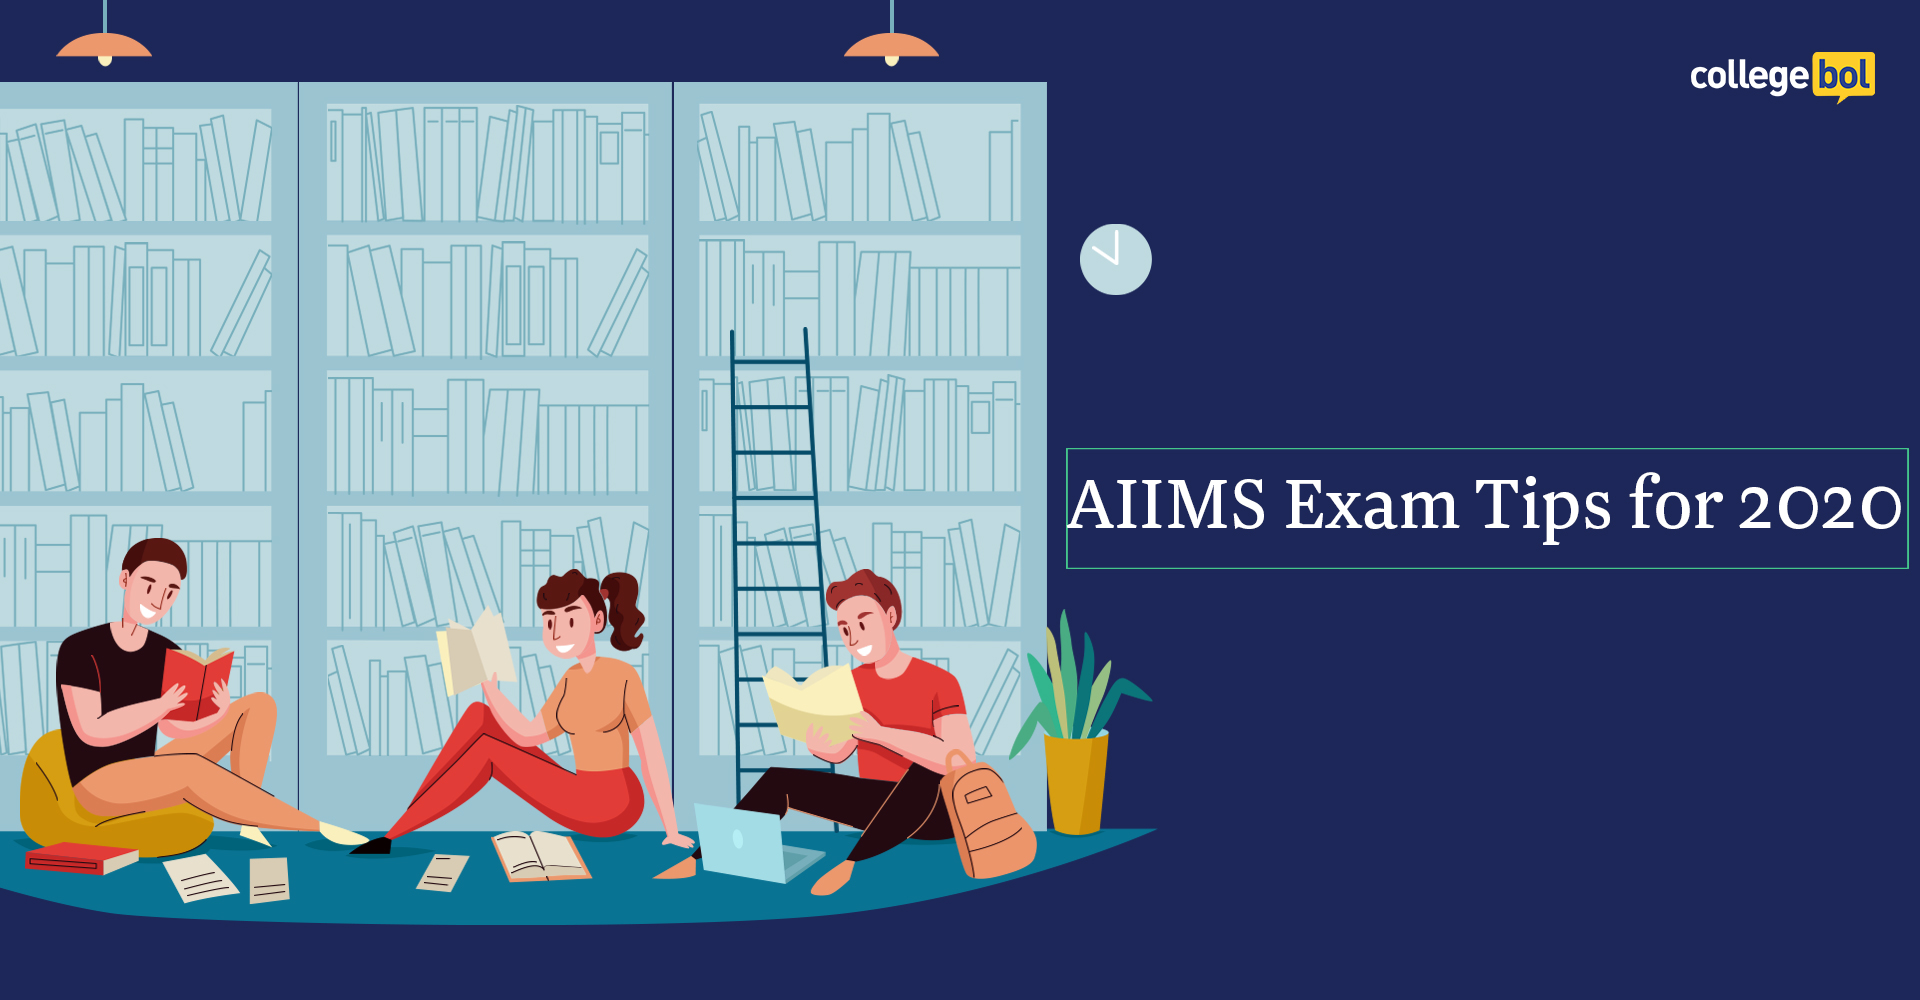 AIIMS most competitive medical entrance exam in India